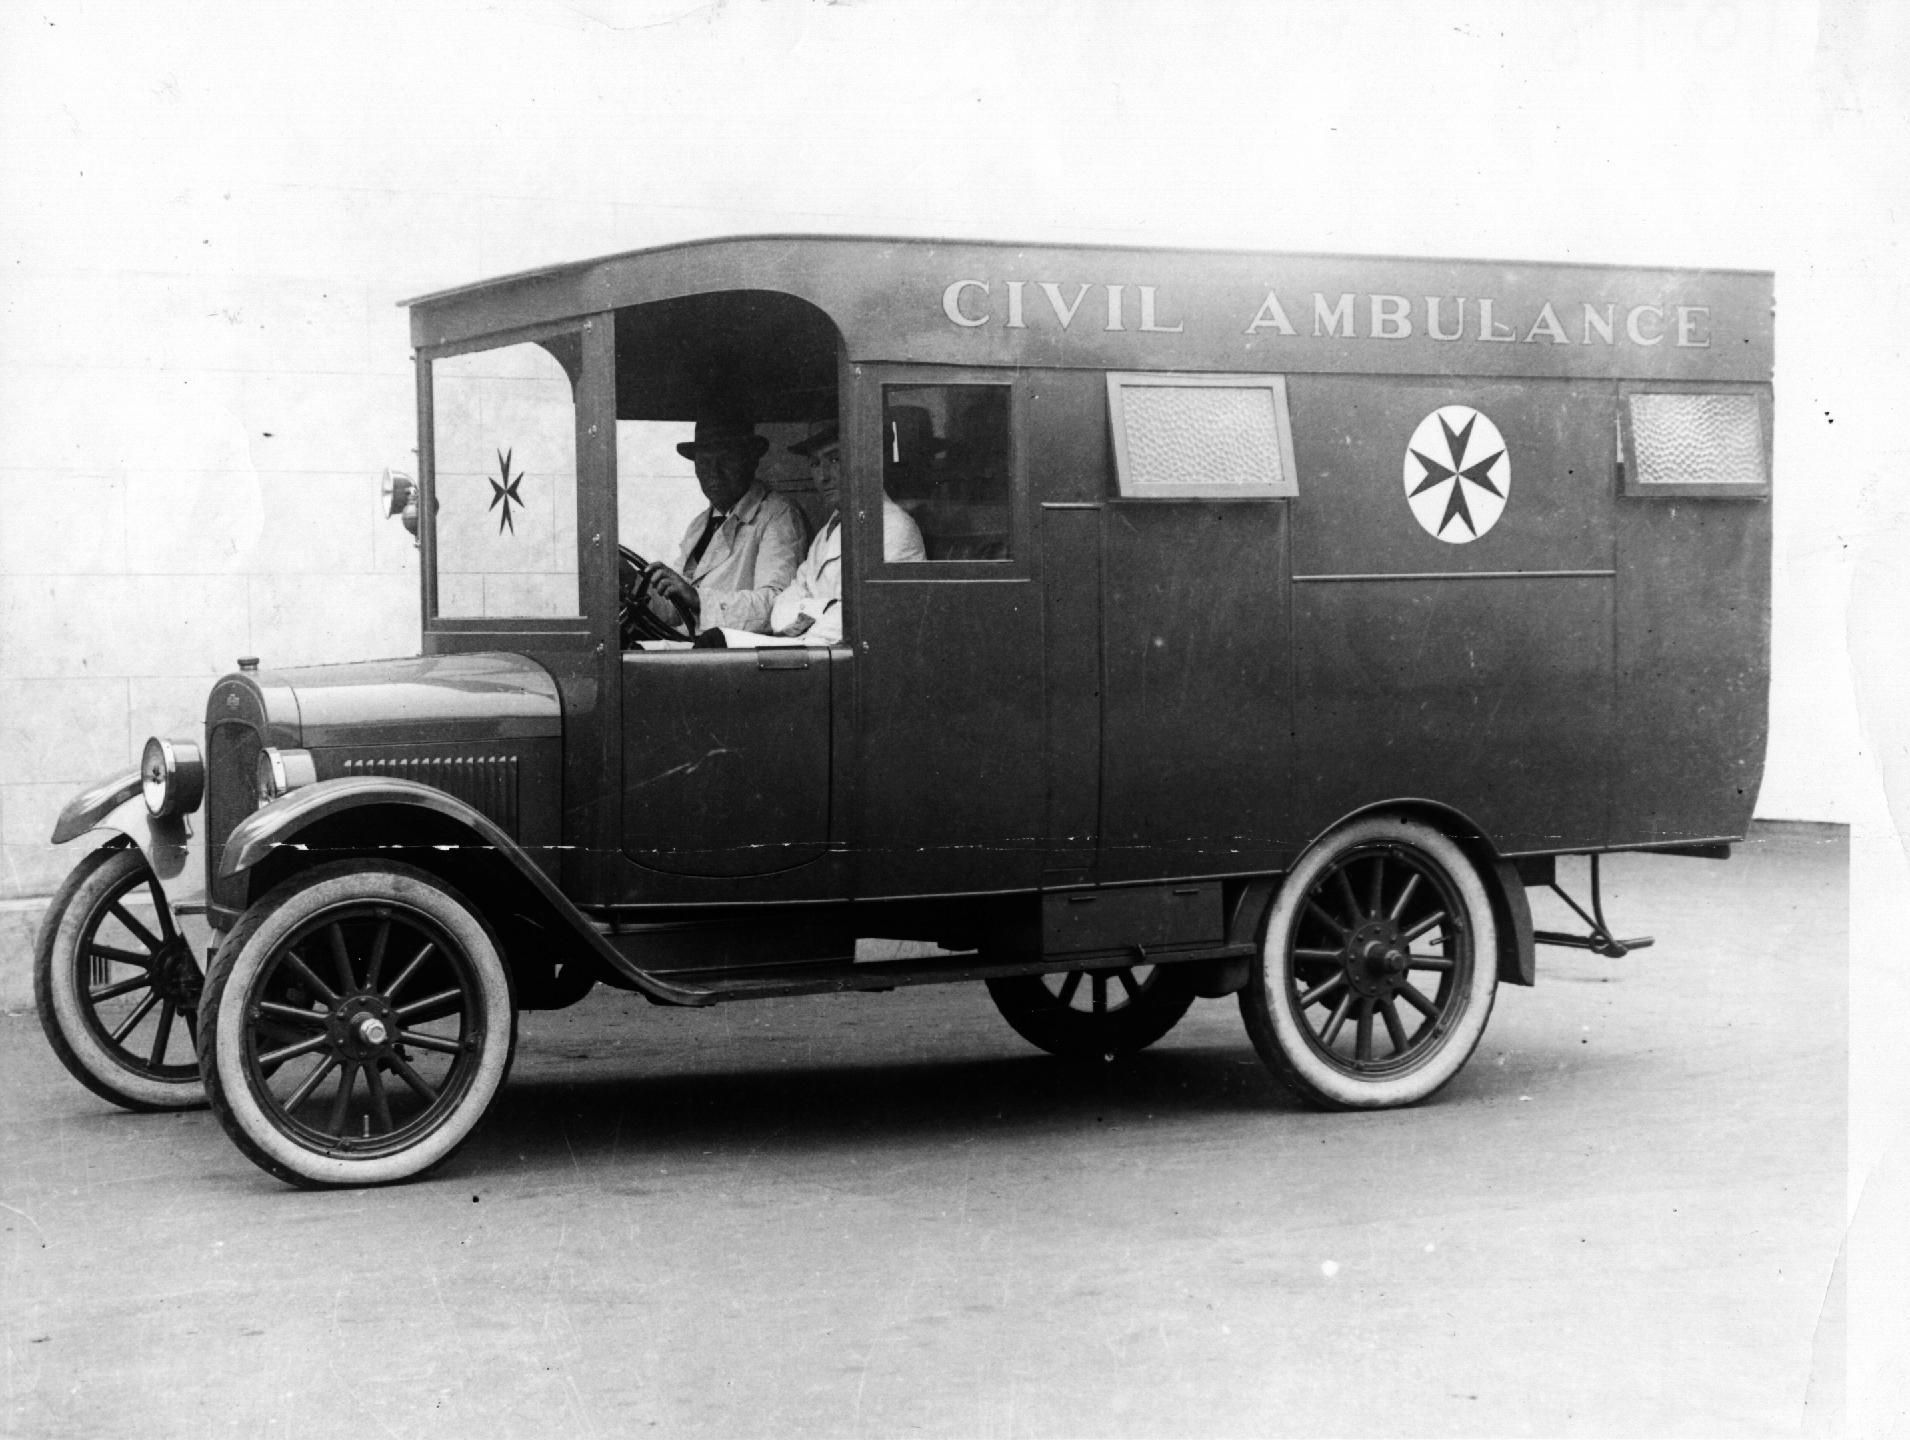 Originally operated by the Snowy Mountains Authority and stationed at Adaminaby in NSW S.A. Civil Ambulance Vehicle Chev 4. 1926